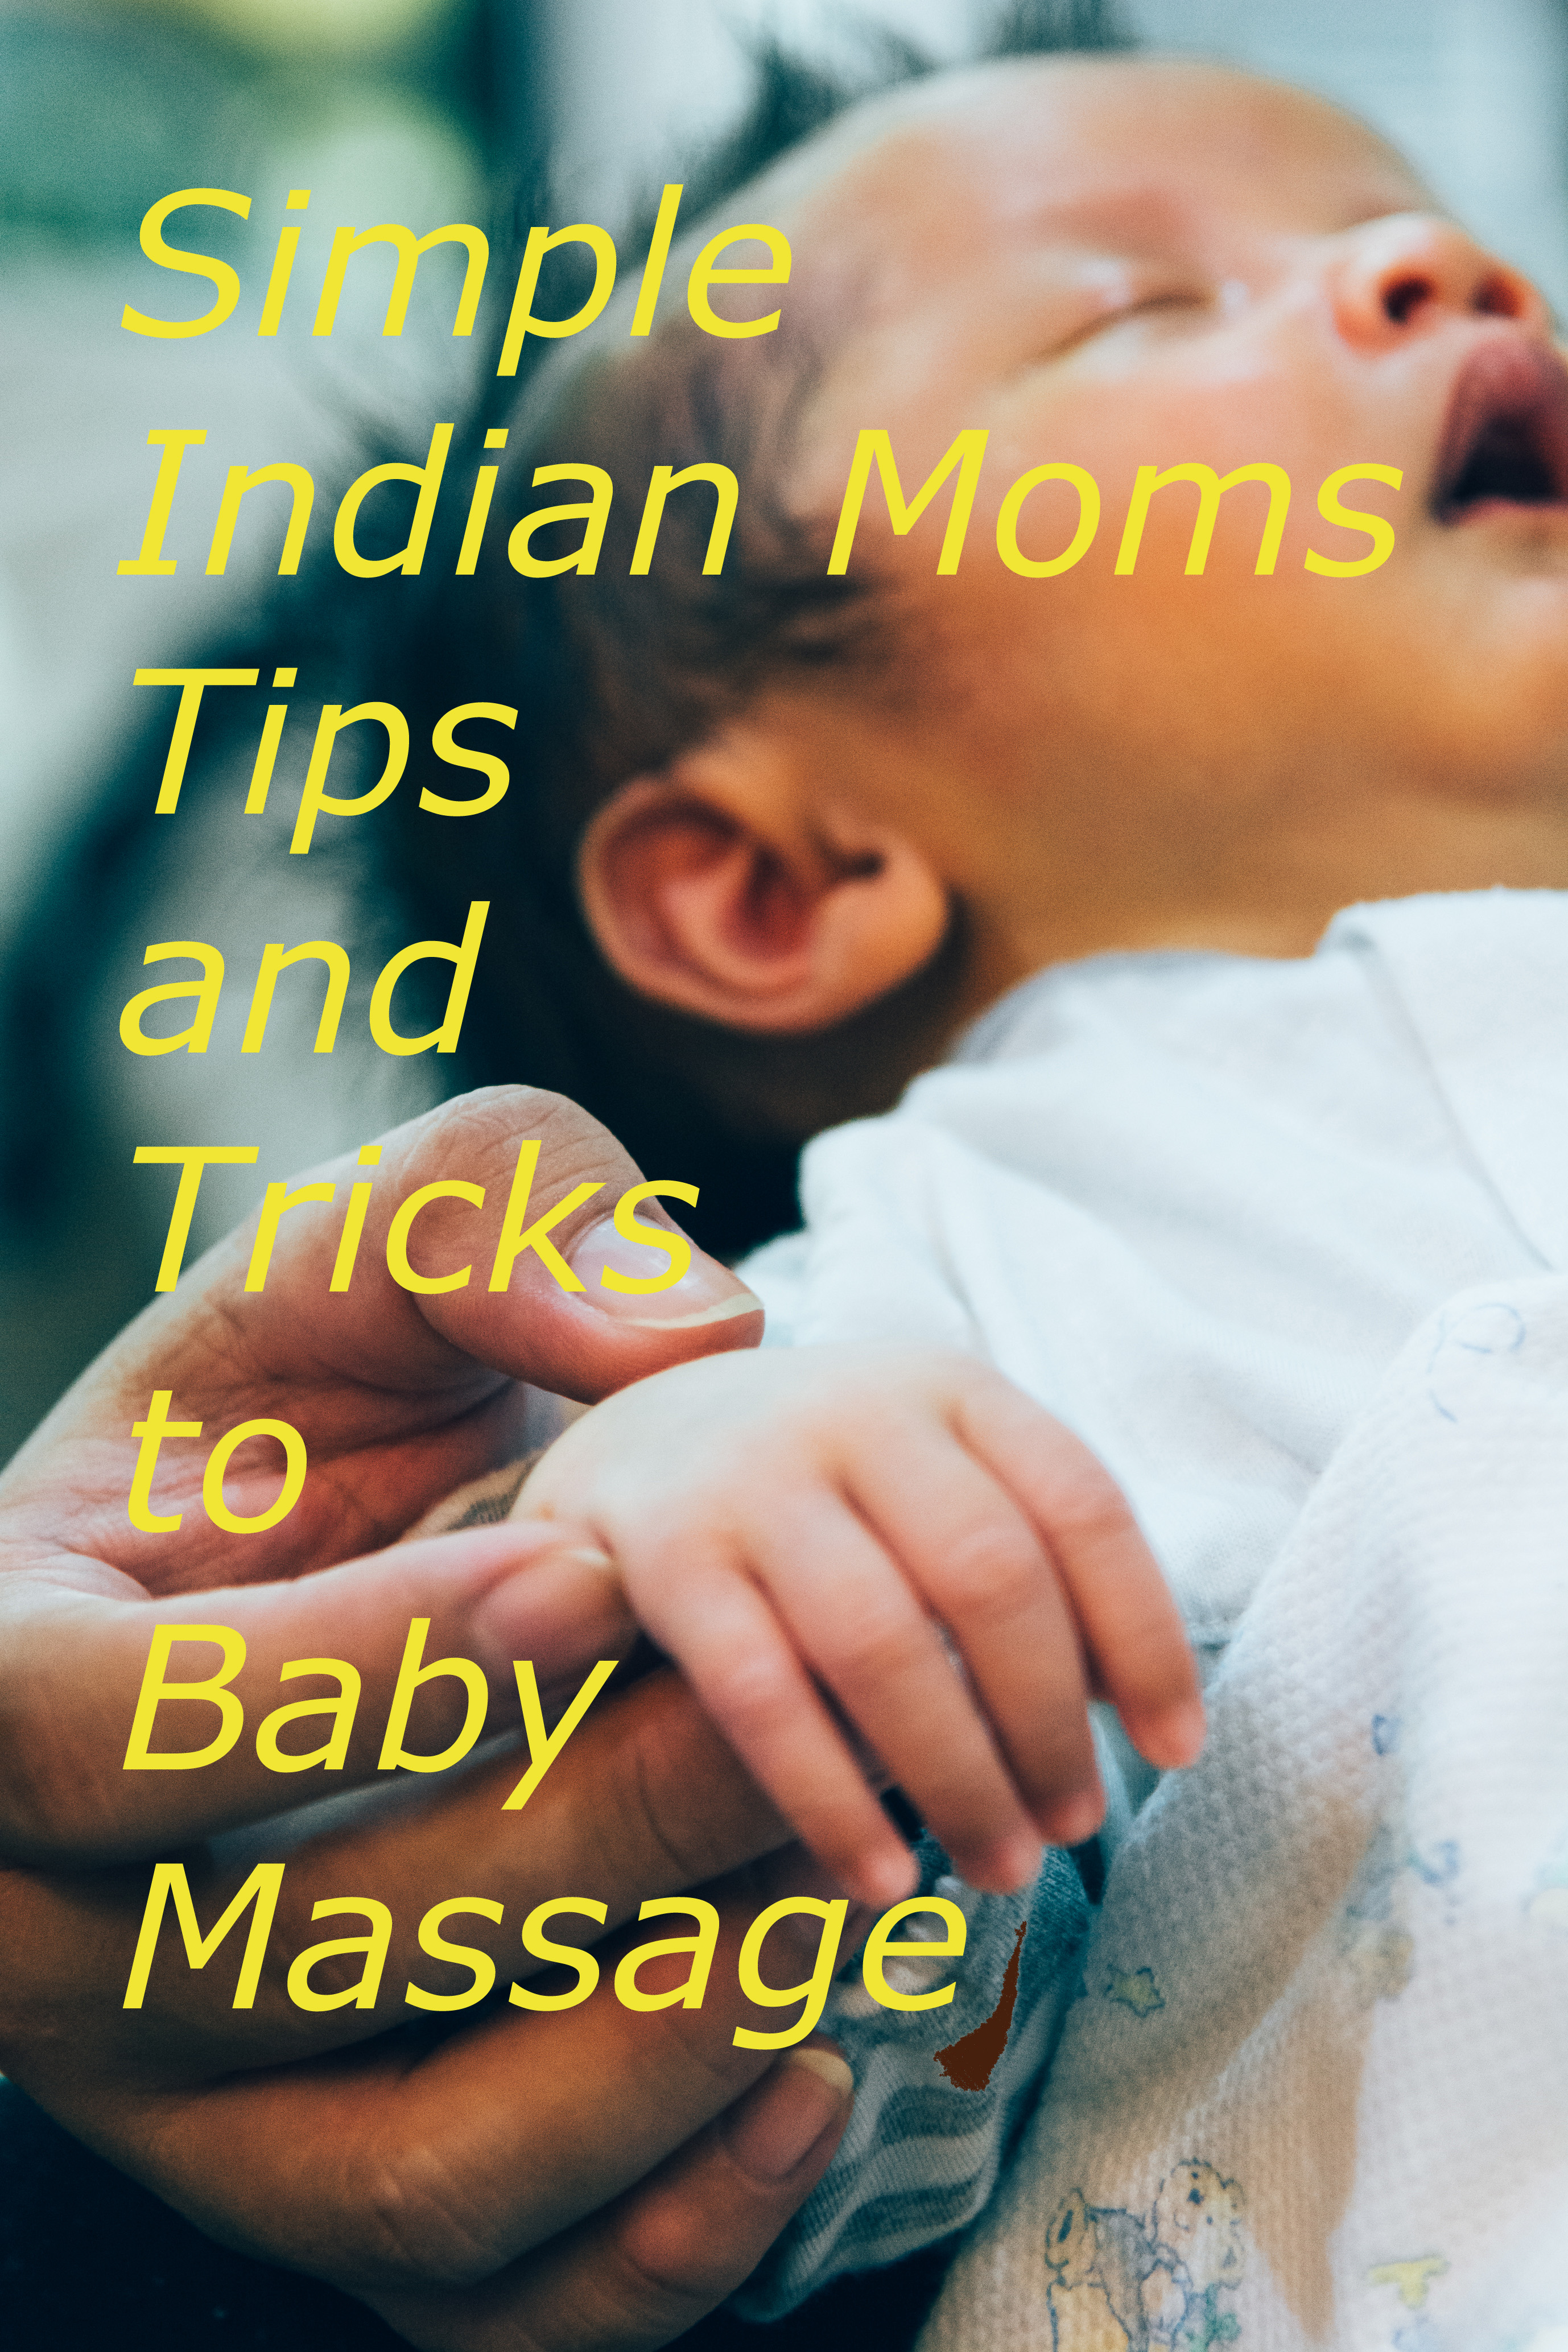 Baby Massage Tips and tricks